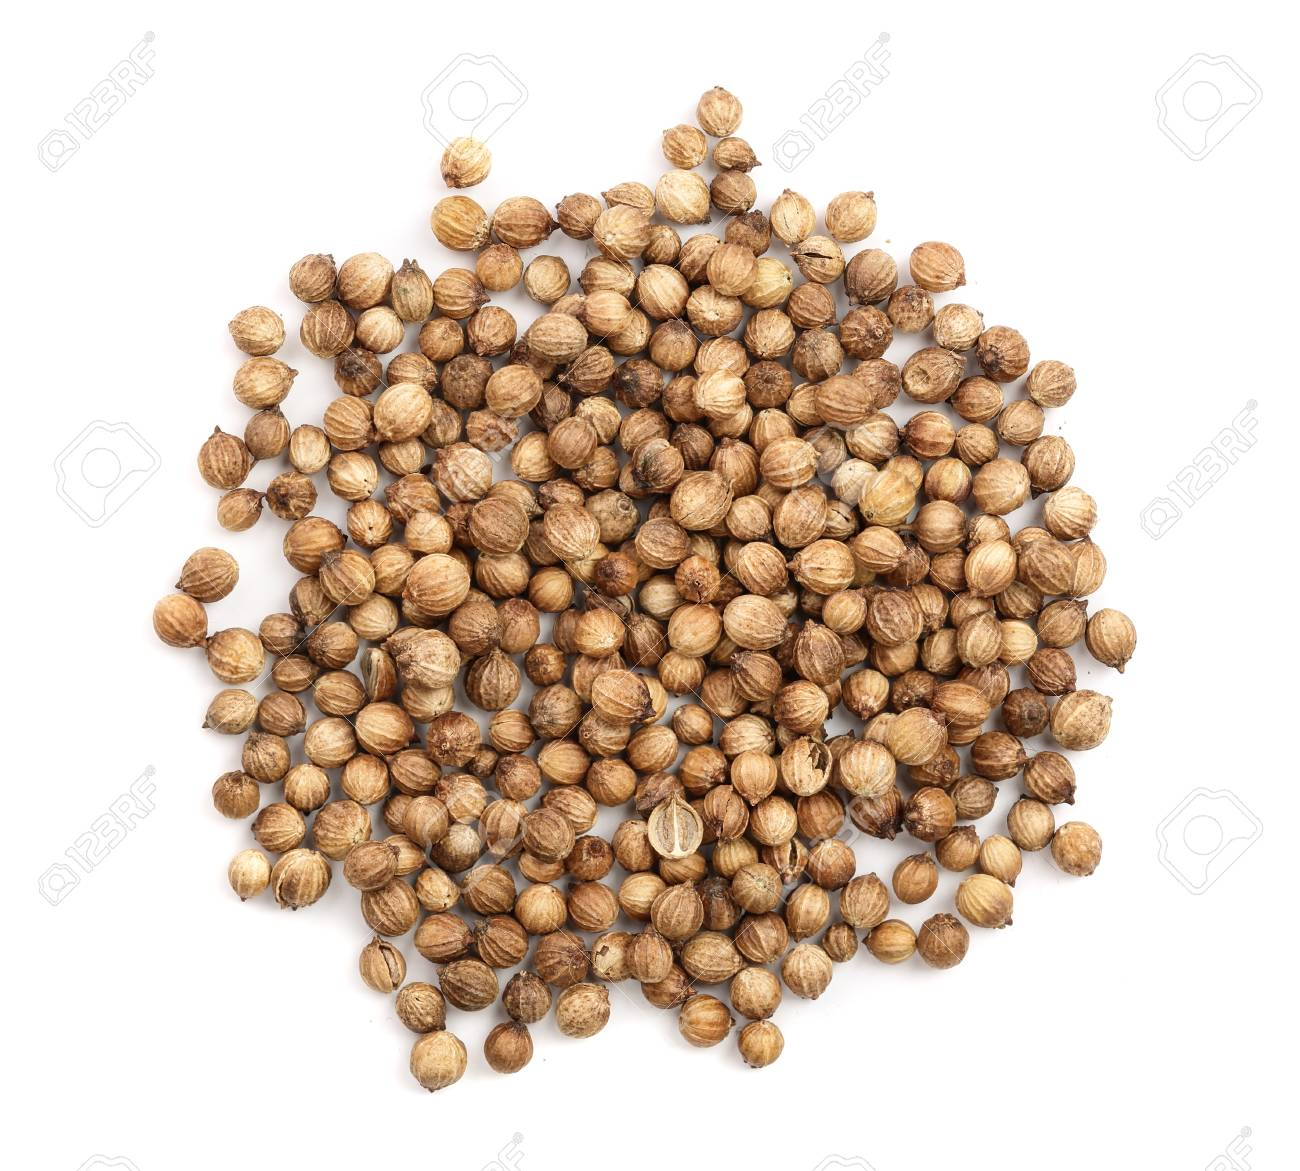 Coriander seeds isolated on white background top view. - 112233960